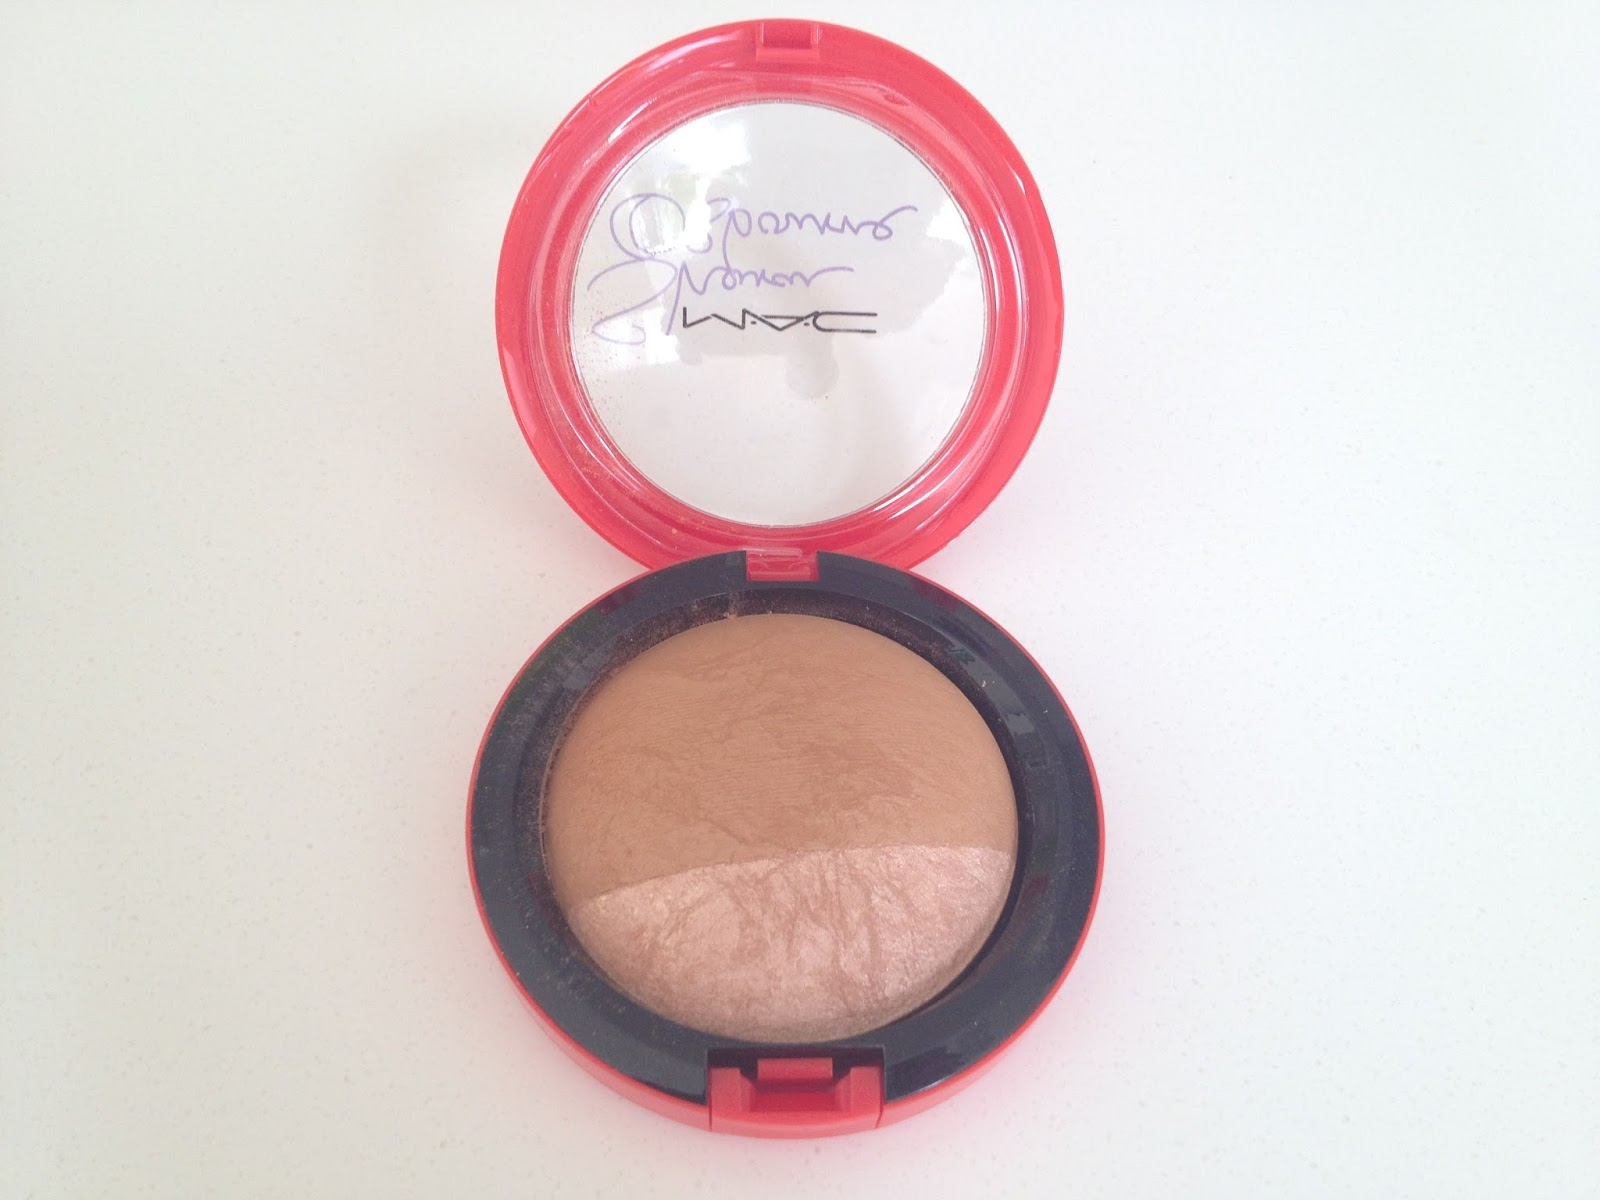 MAC Sharon Osbourne Mineralize Skinfinish in Refresh